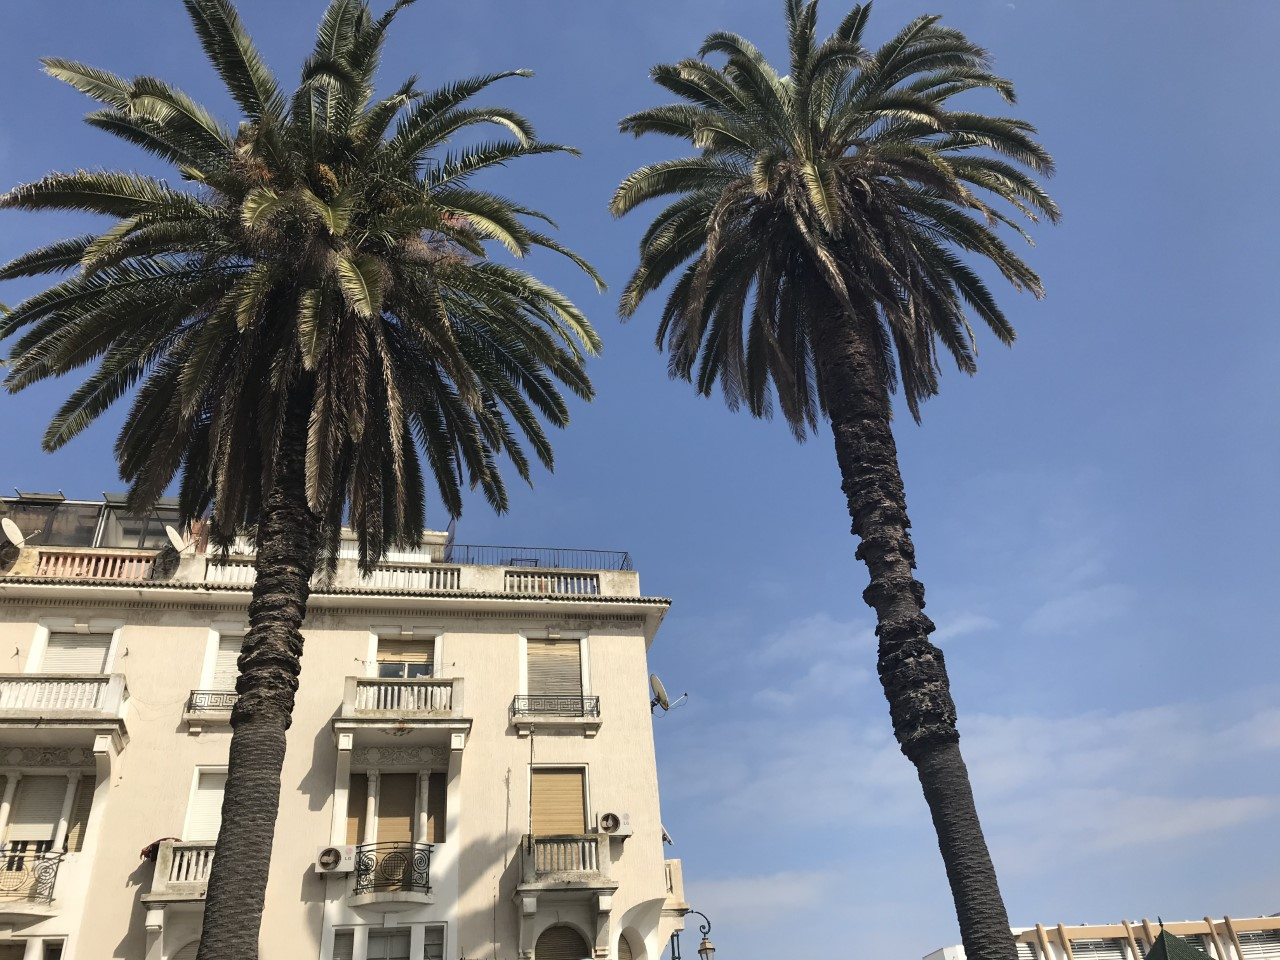 Palm trees tower over a building in the colonial section of Rabat